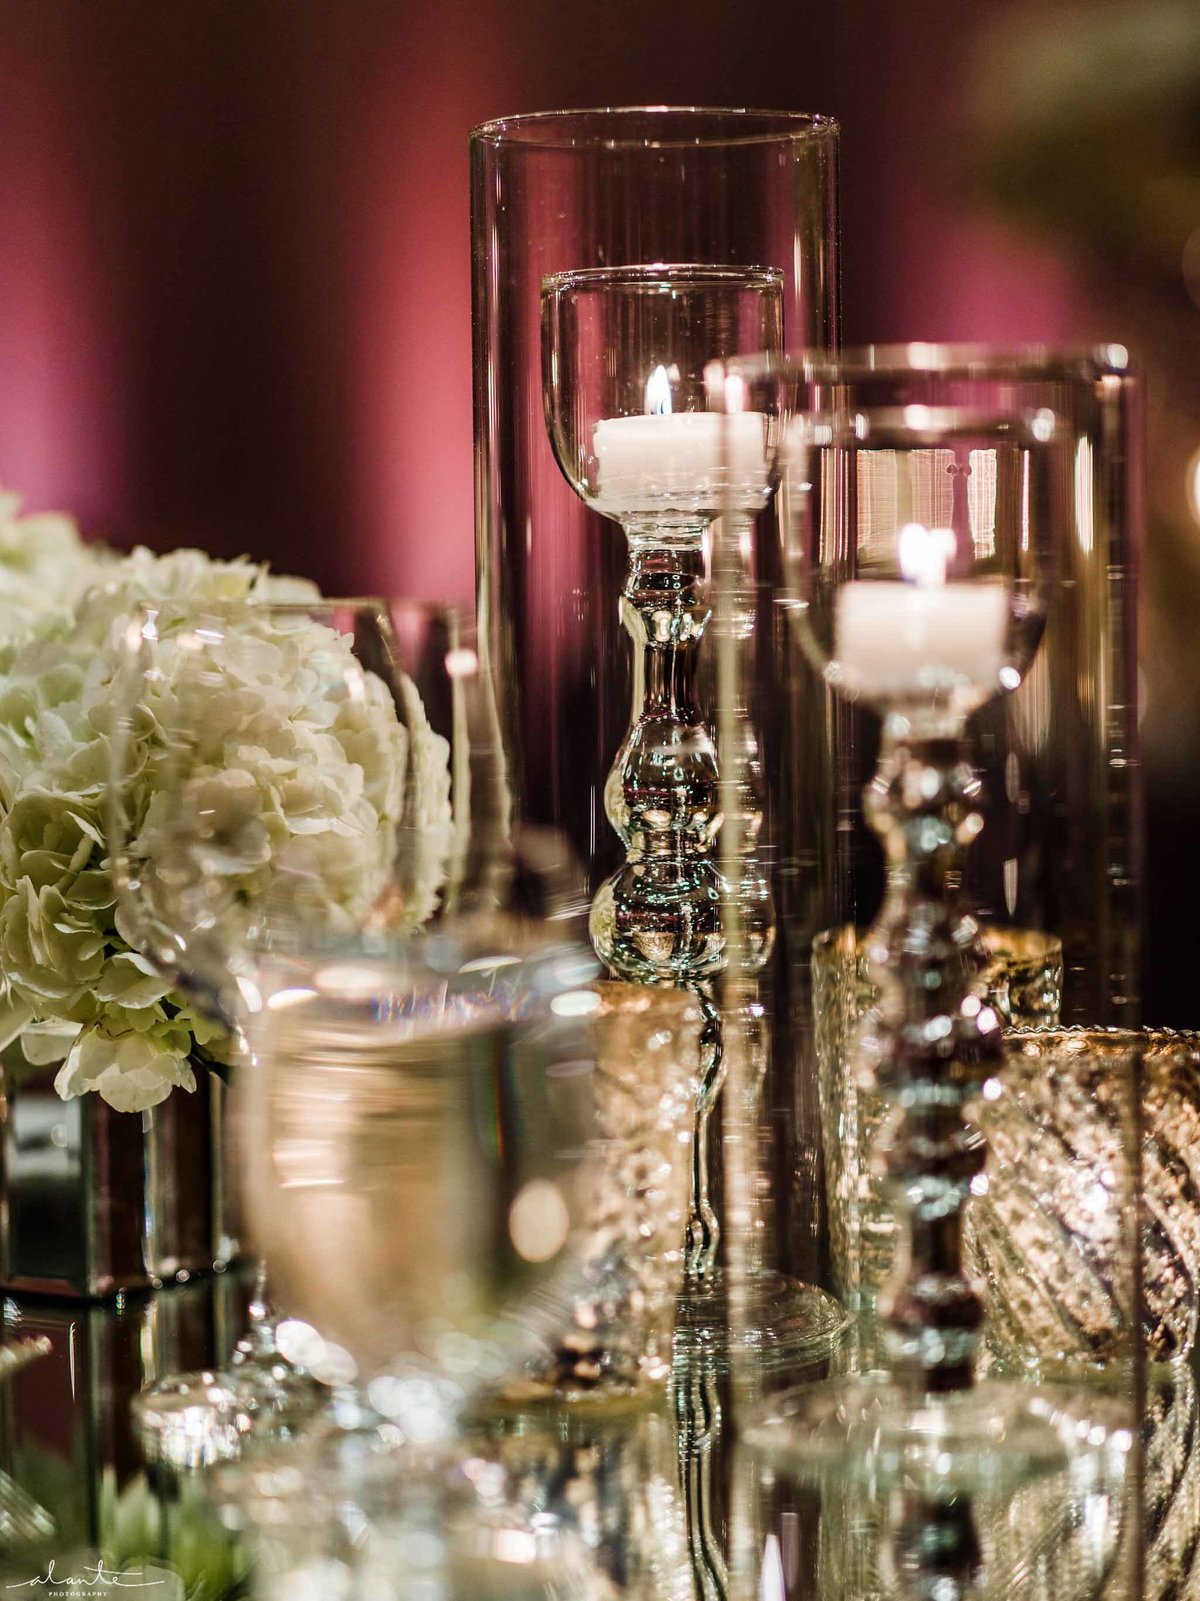 96Seattle-luxury-wedding-Flora-Nova-Design